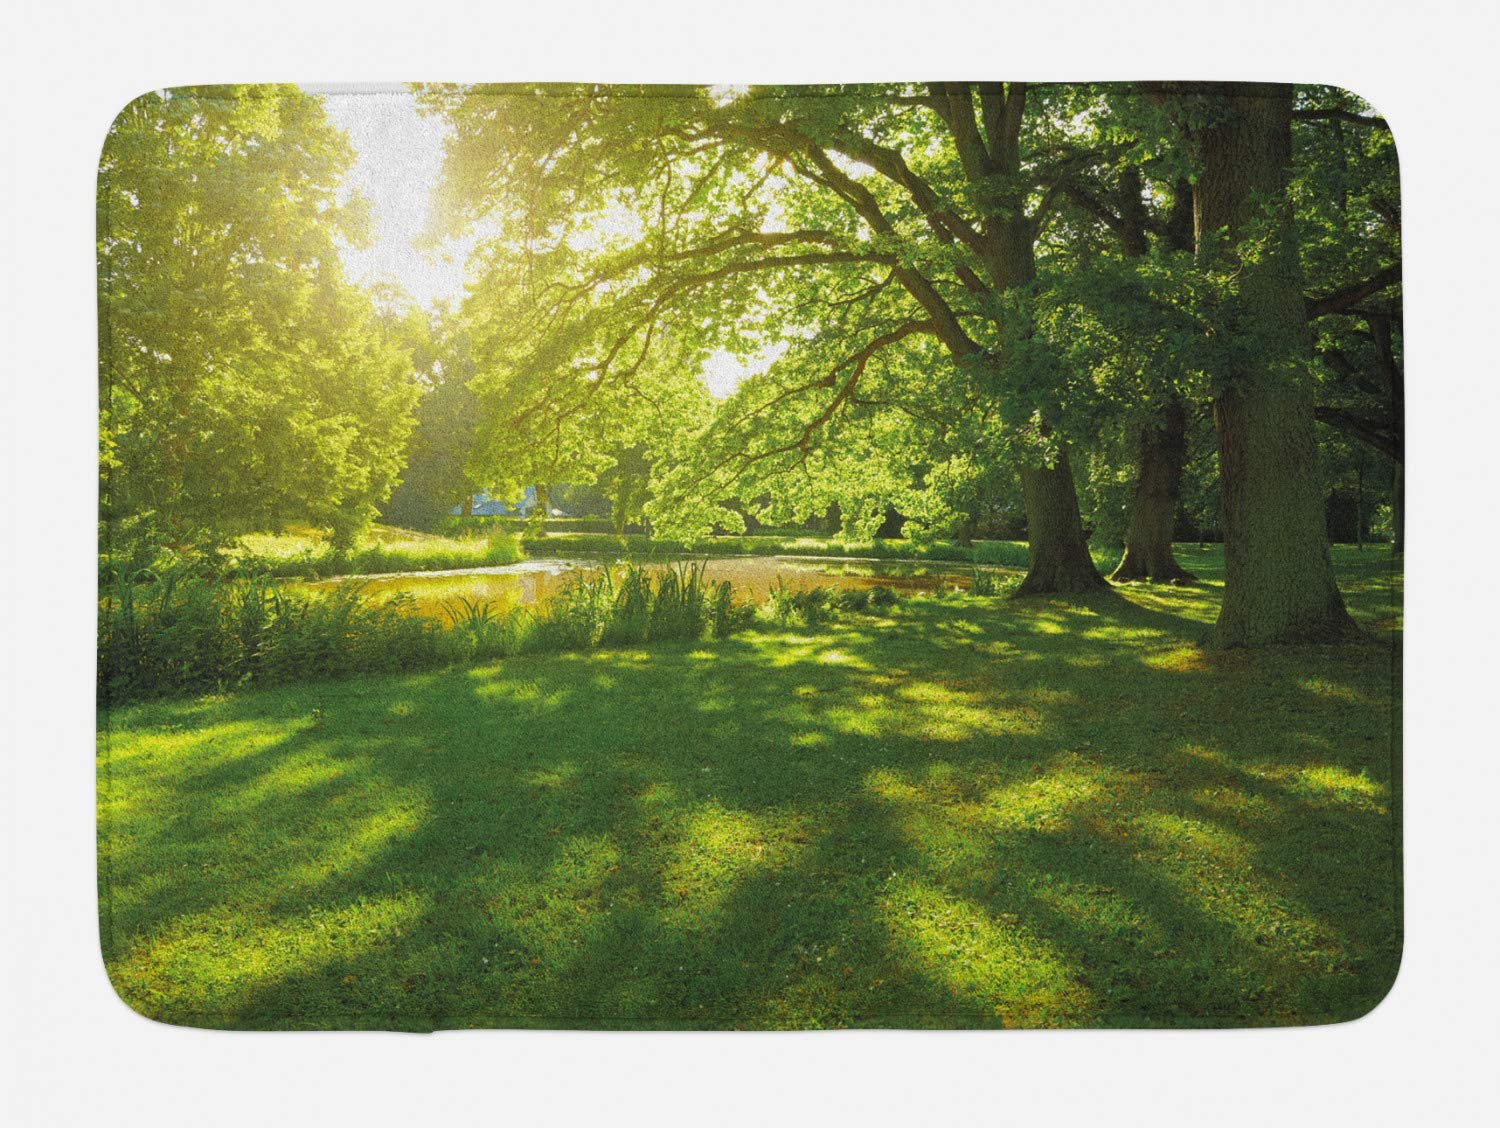 Ambesonne Green Bath Mat, Summer Park in Hamburg Germany Trees Sunlight Forest Nature Theme Scenic Outdoors Picture, Plush Bathroom Decor Mat with Non Slip Backing, 29.5